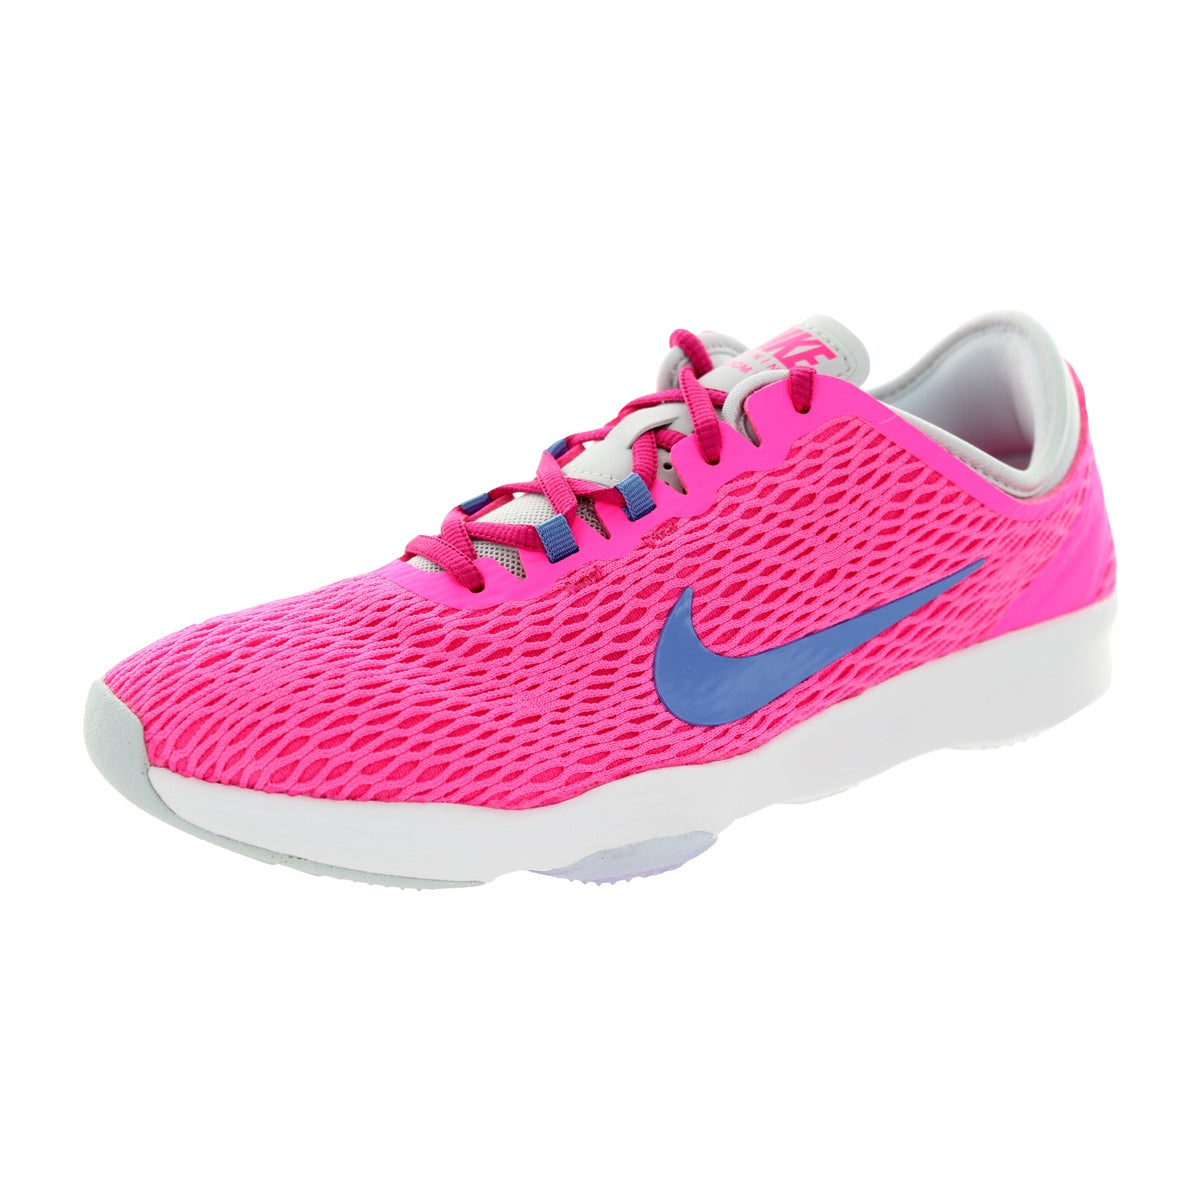 138111cc9ce2 Shop Nike Women s Zoom Fit Pink Pow Polar Frbrry  Training Shoe - Free  Shipping Today - Overstock - 12322032